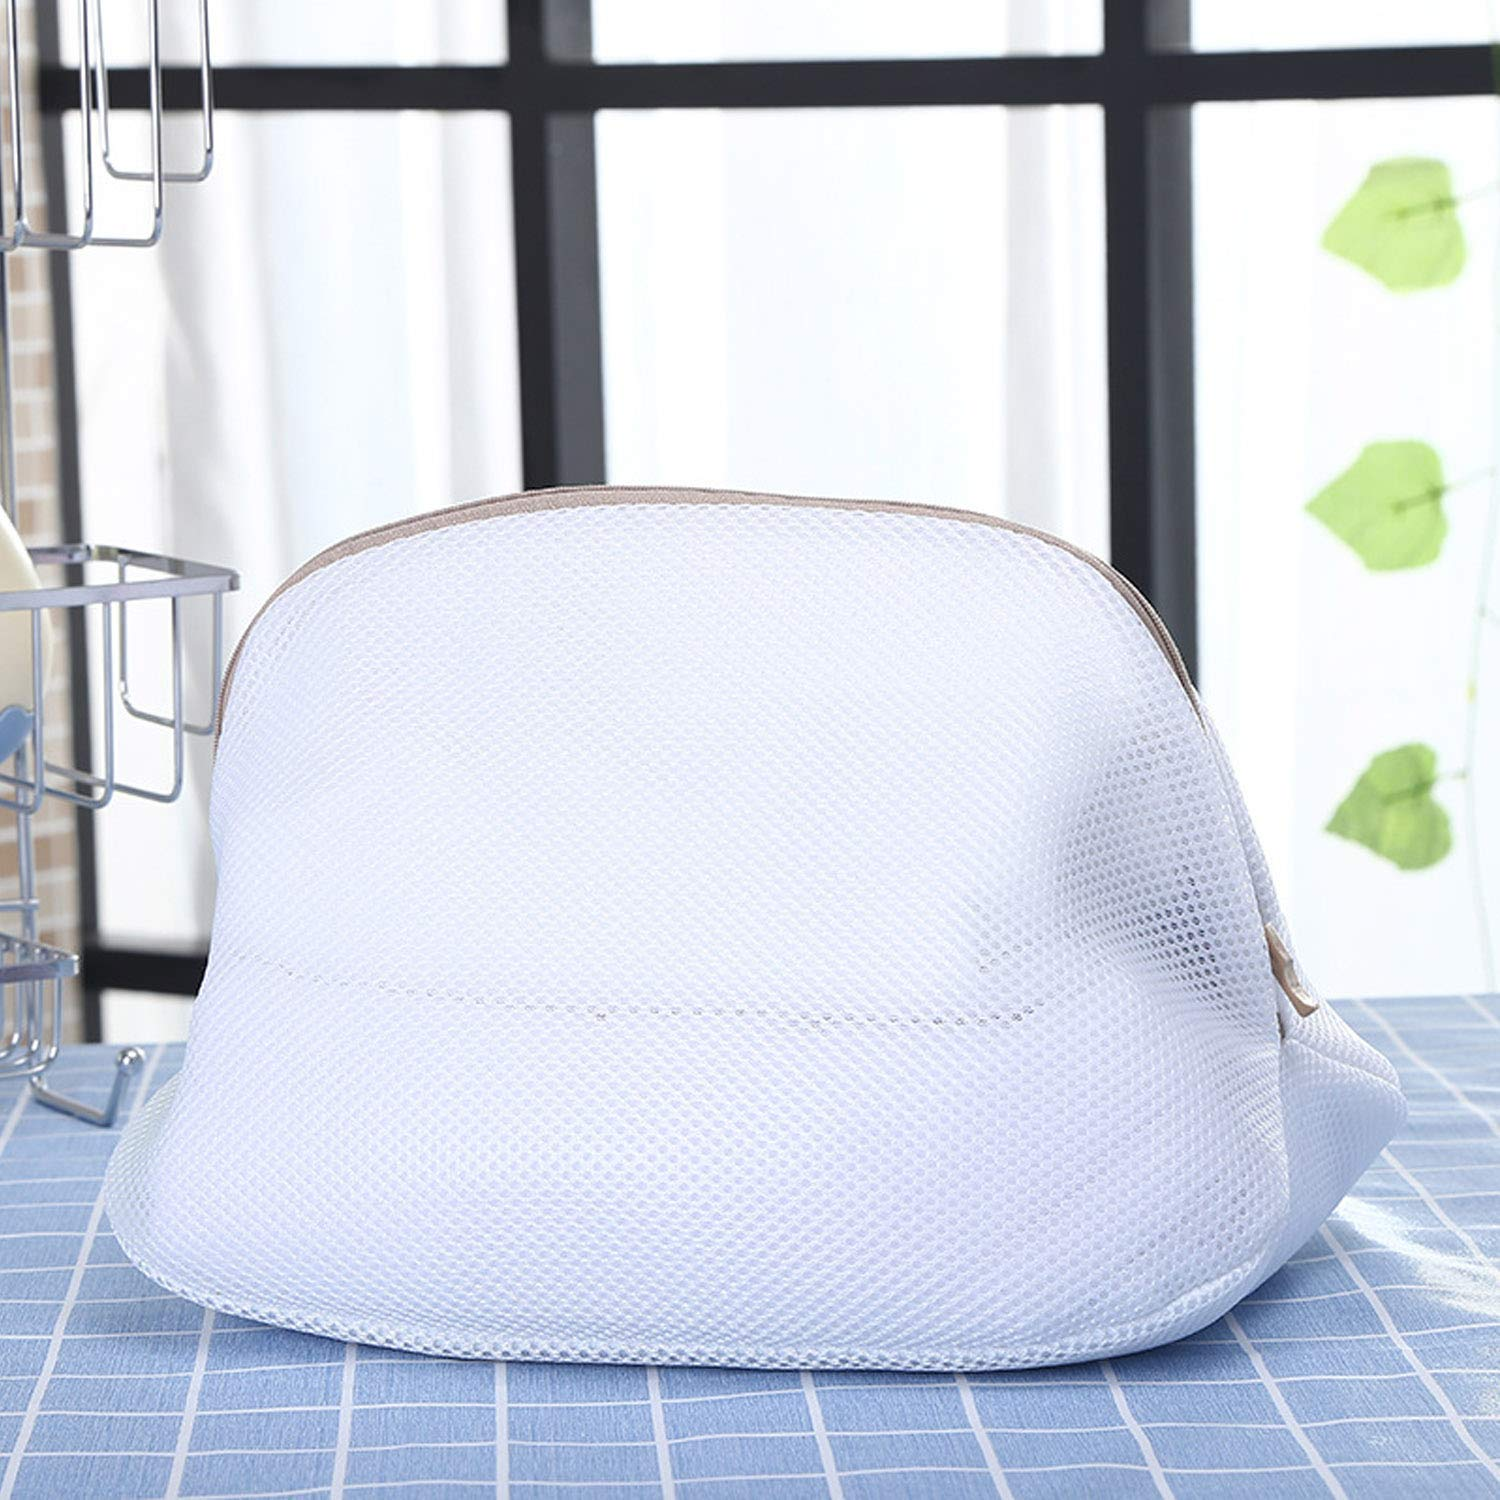 2pcs Double Layer Mesh Laundry Net Bag Storage Bags with Zip Closure for Washing Machine Clothes Bras Socks Shoes